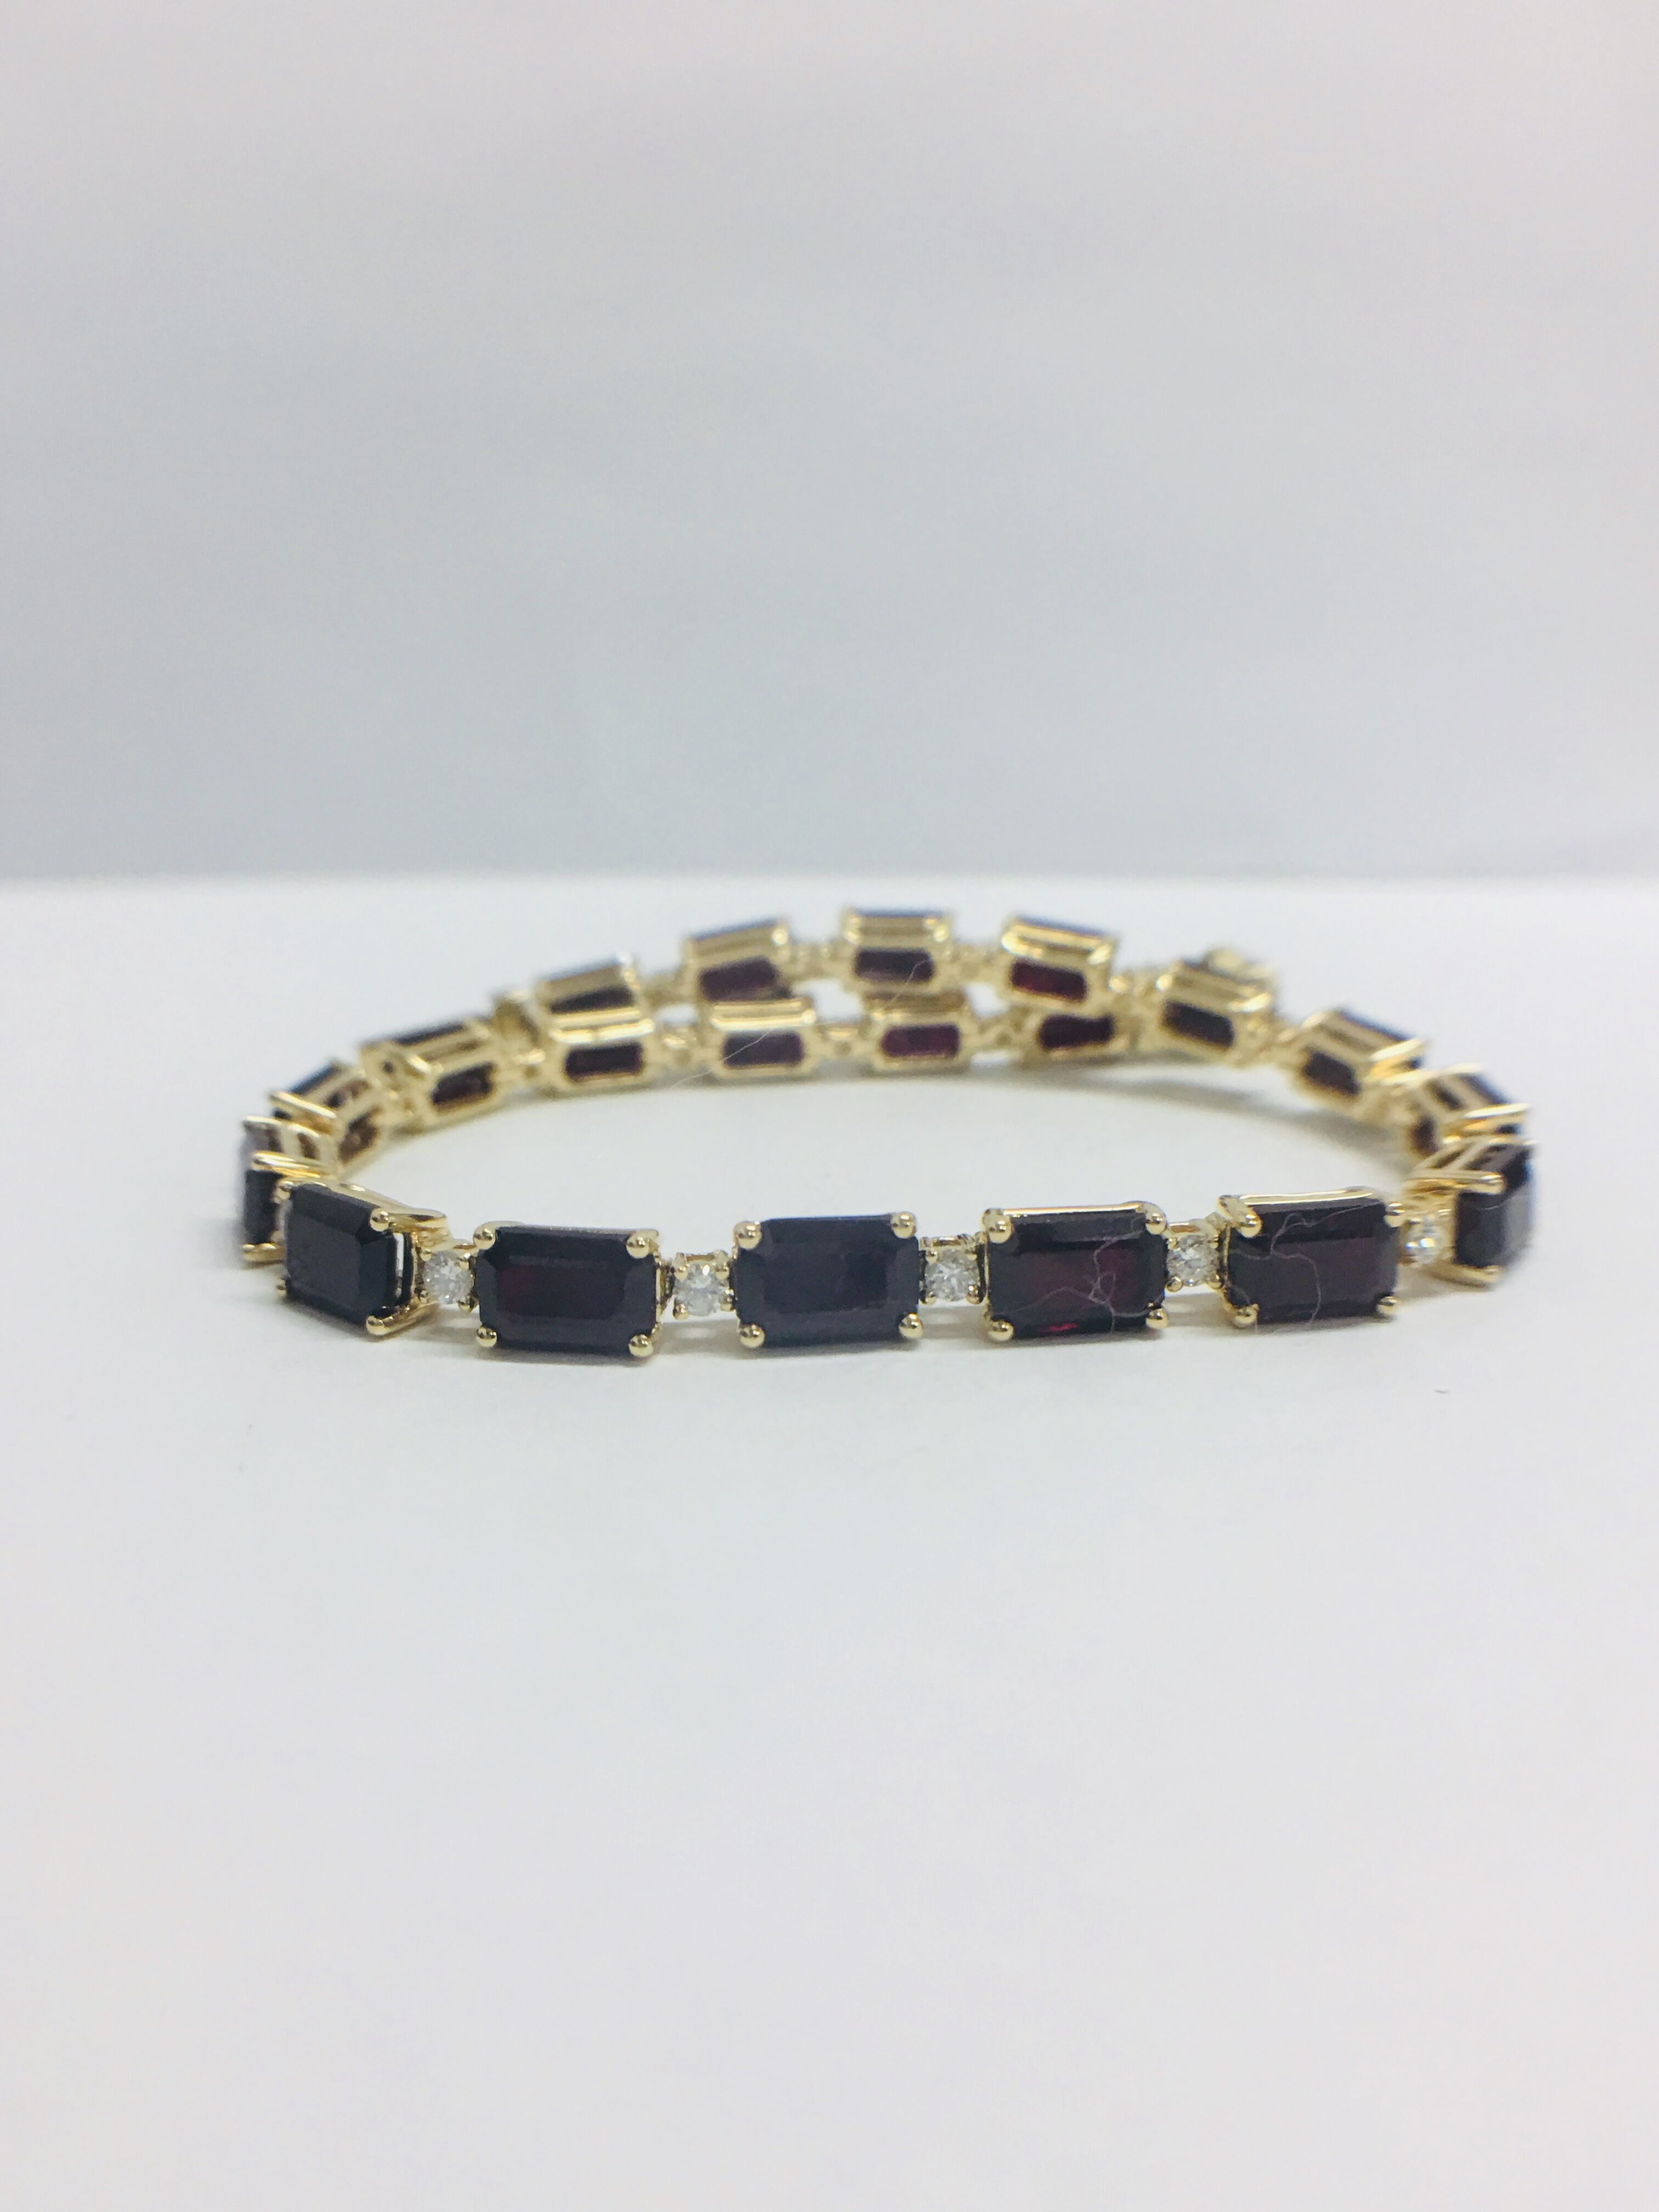 18ct yellow gold ruby and diamond tennis bracelet - Image 9 of 10